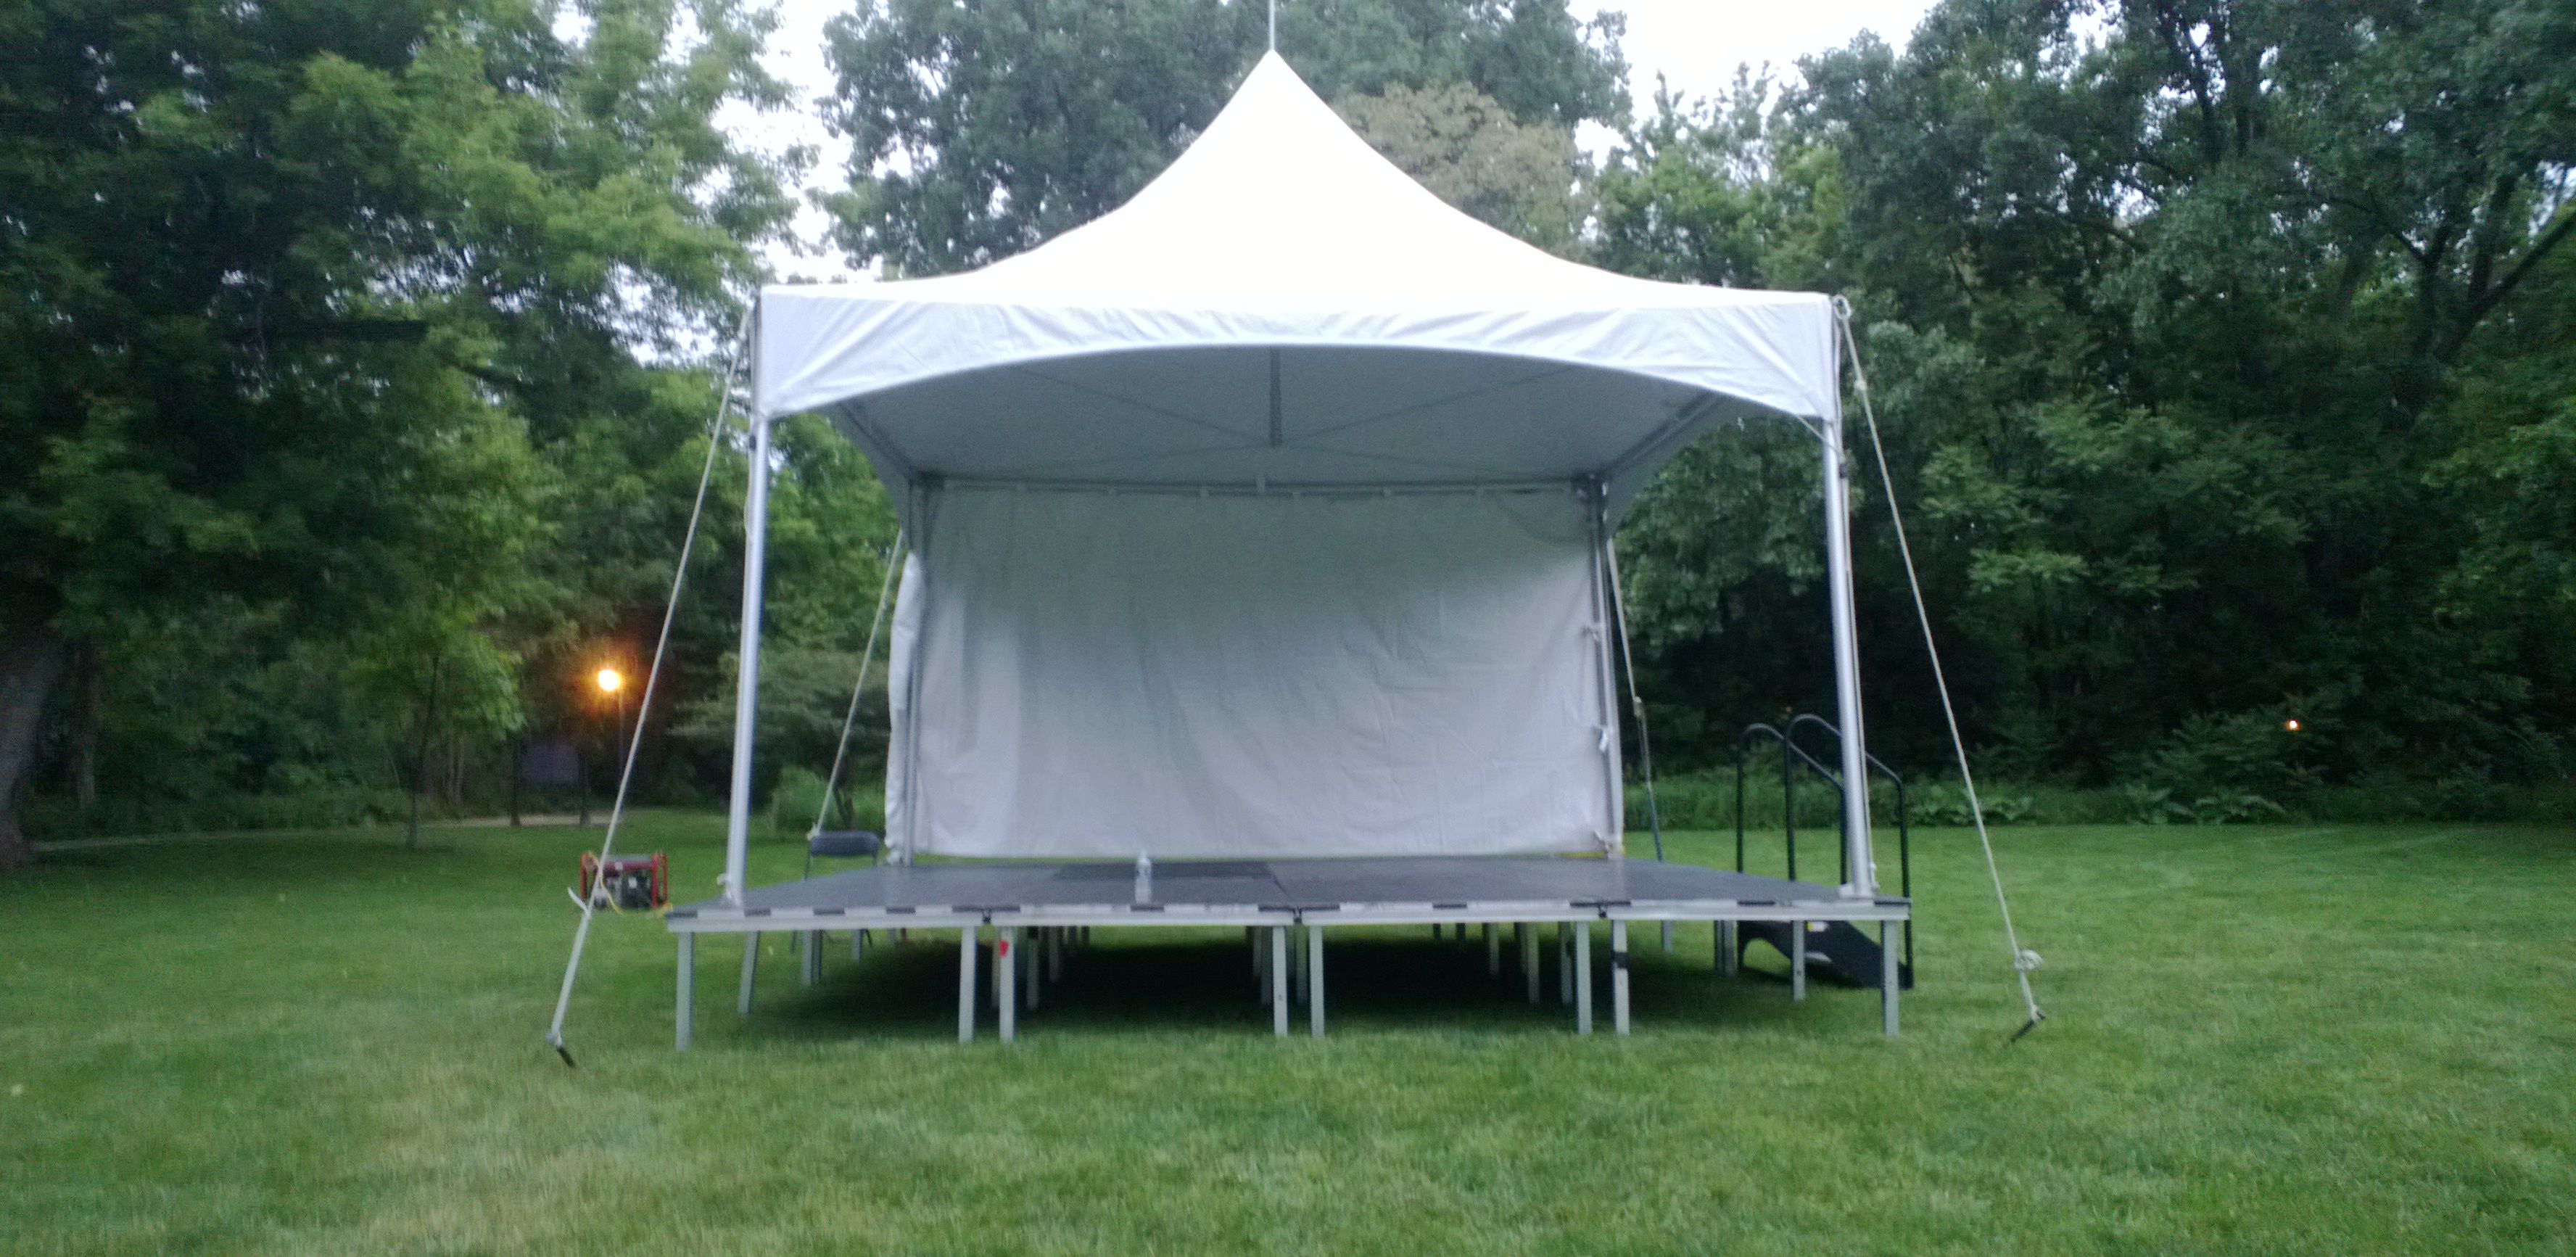 Tent in park